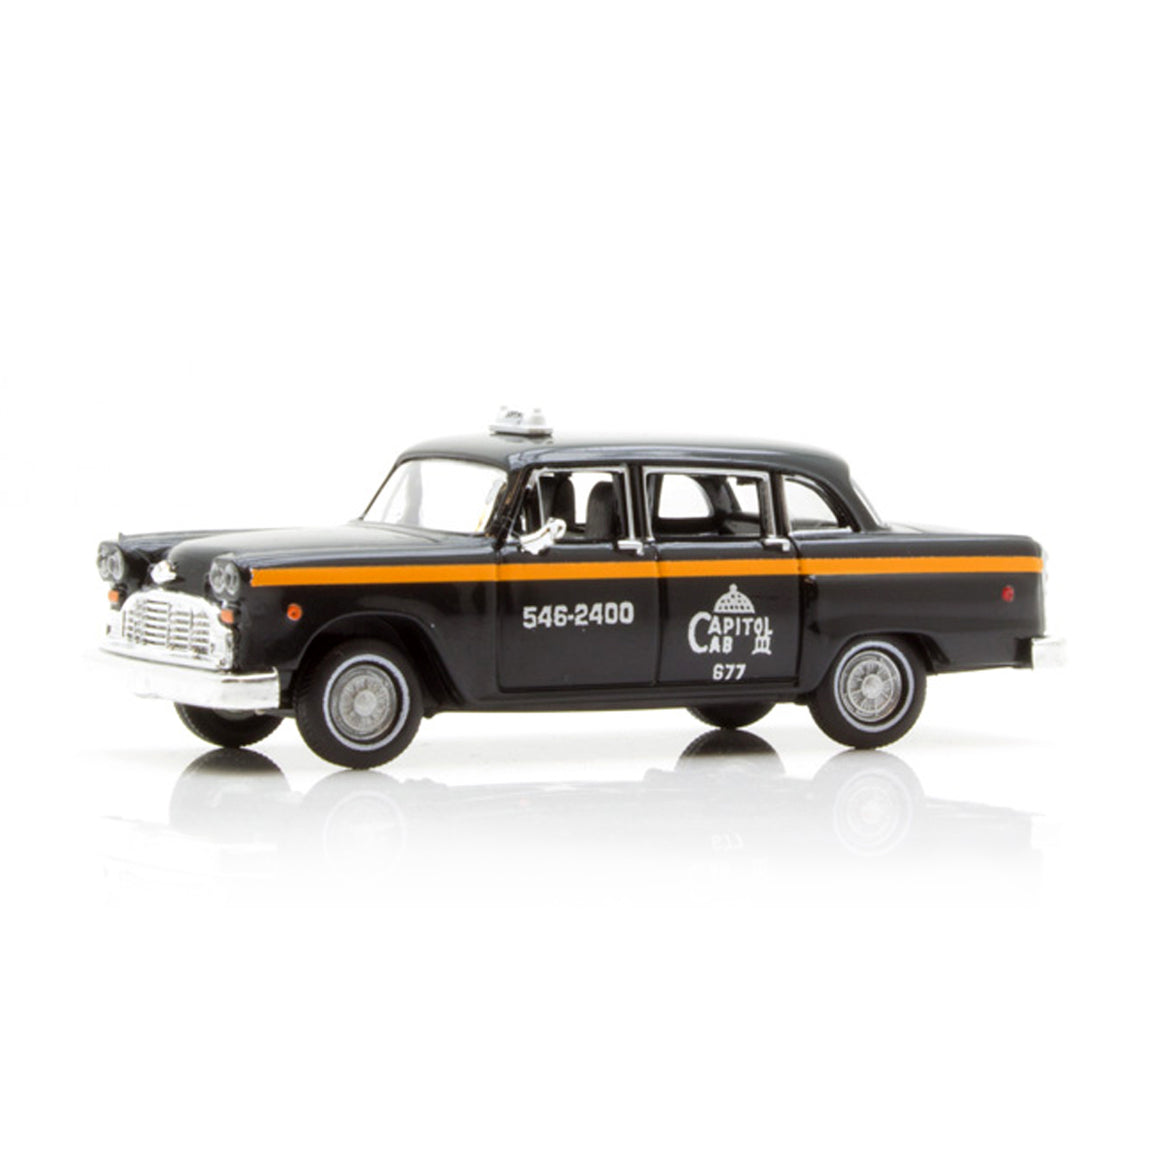 HO Scale: Checker Marathon Taxicab - Washington DC